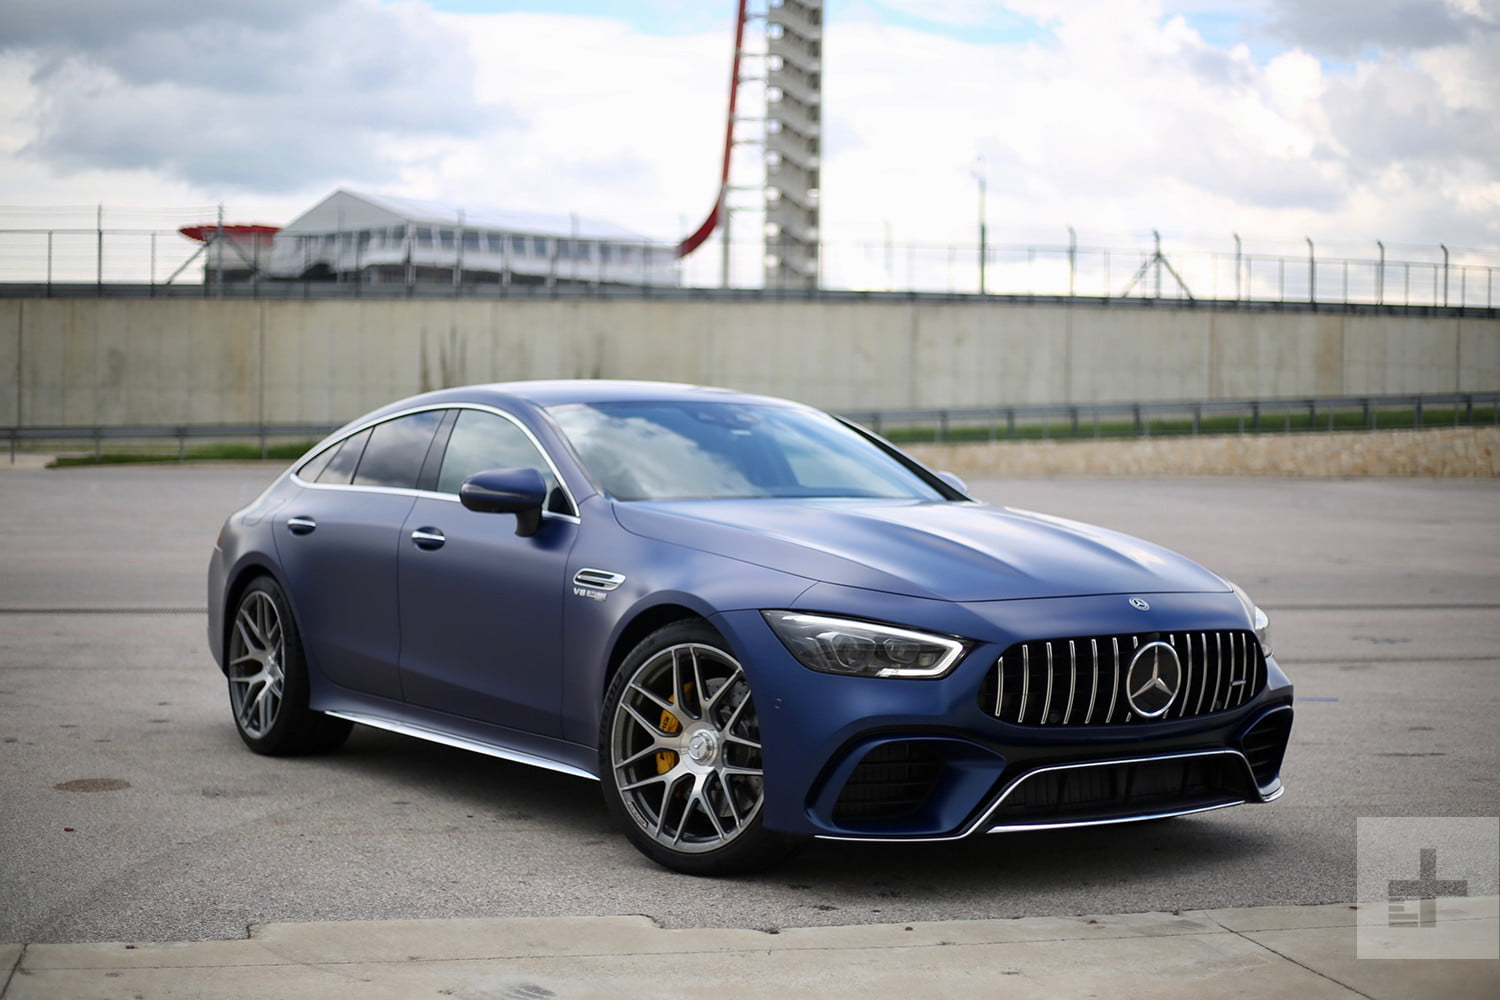 No more excuses. This AMG just schooled the world on what four-doors can do